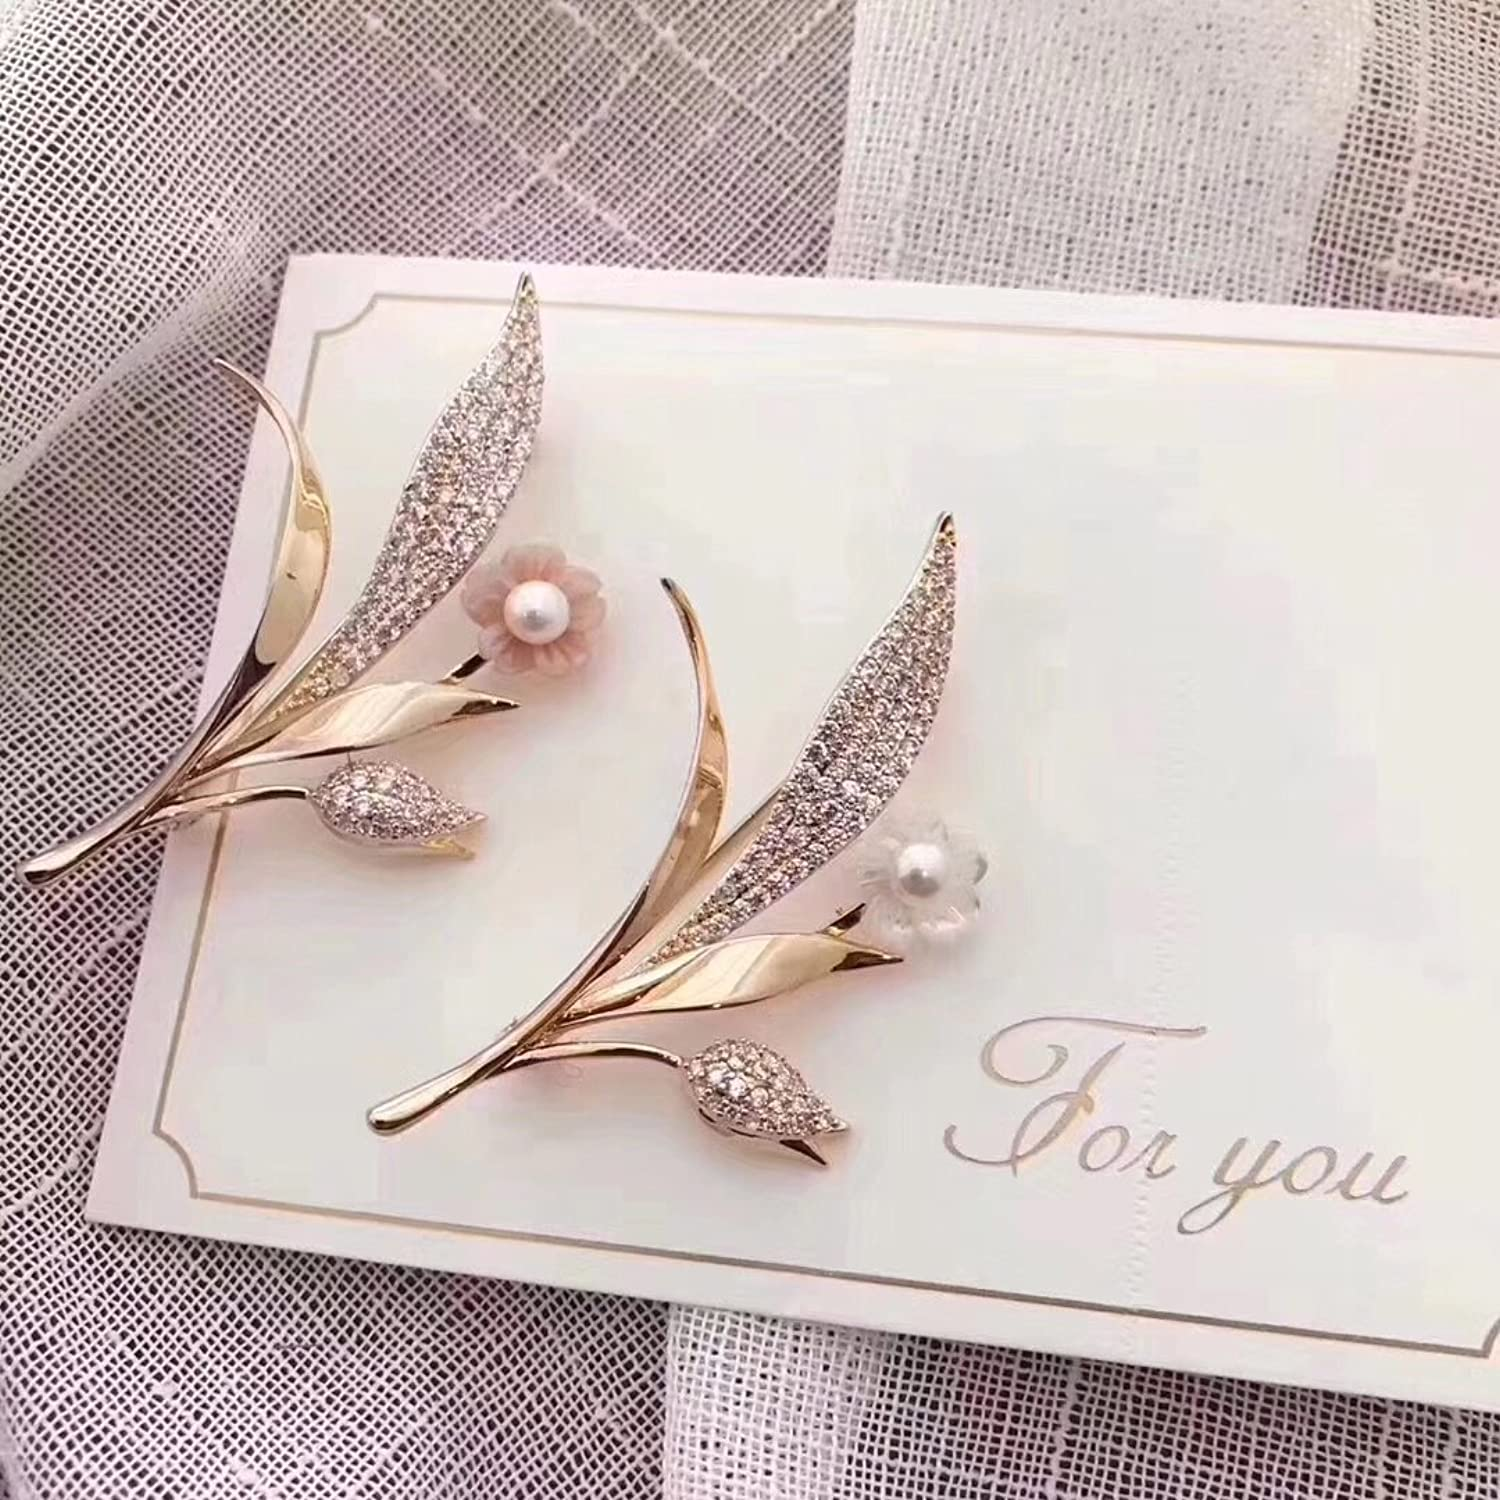 Korean Fashion Leaf Brooch pin Badge Dazzling with Winter Let Your Winter Highlights